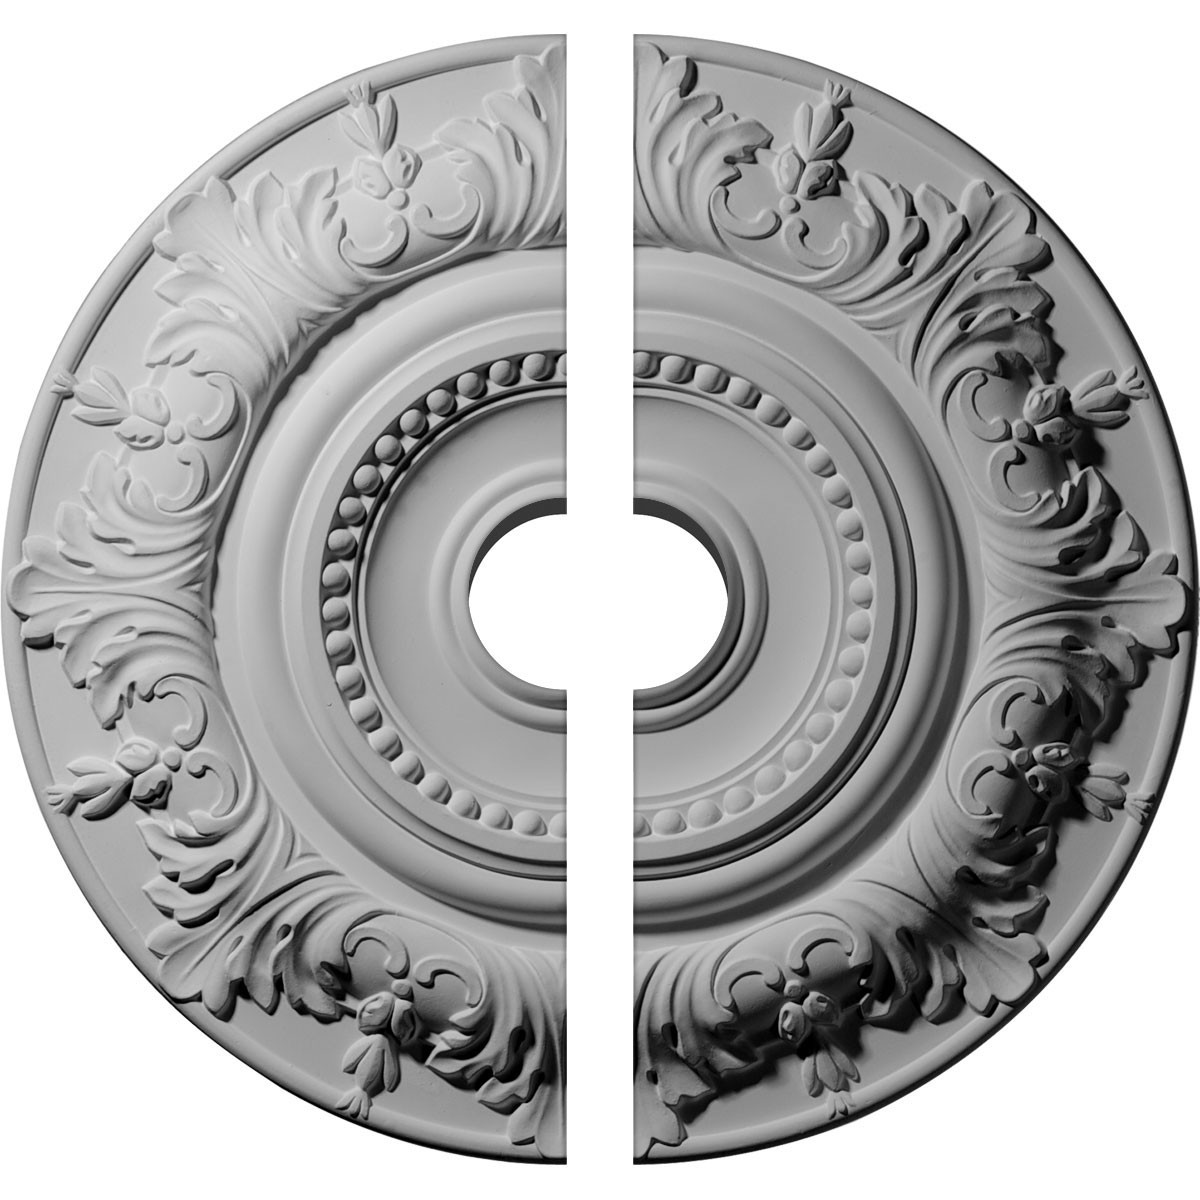 "EM-CM20BX2-03500 - 20 7/8""OD x 3 1/2""ID x 1 1/4""P Biddix Ceiling Medallion, Two Piece (Fits Canopies up to 7 1/2"")"